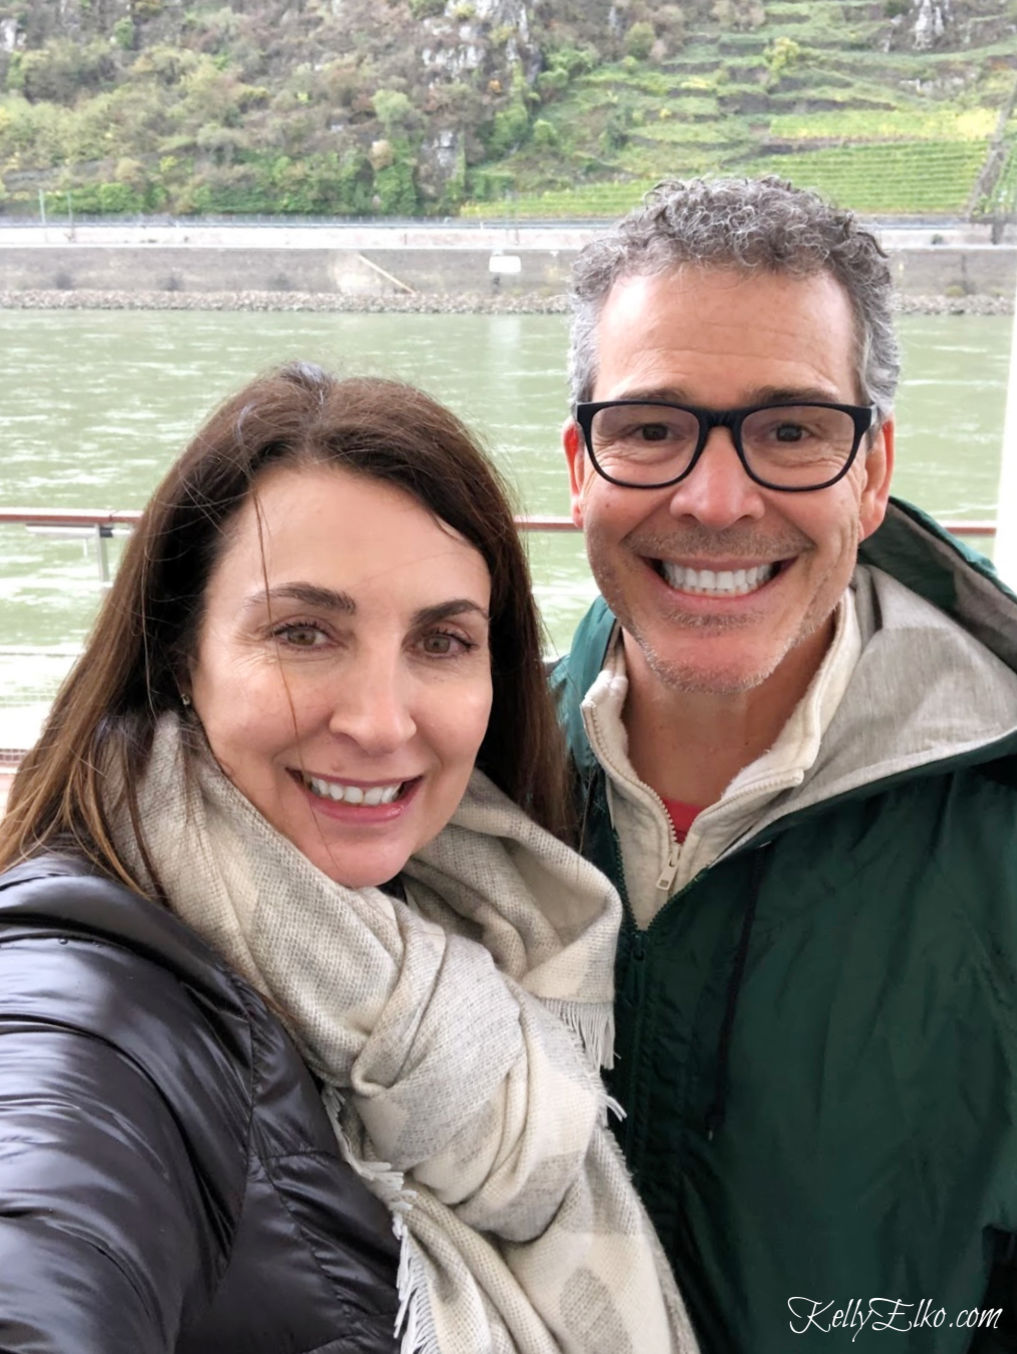 Packing tips for a river cruise kellyelko.com #rivercruise #packingtips #travel #travelblog #travelblogger #rhineriver #packingtips